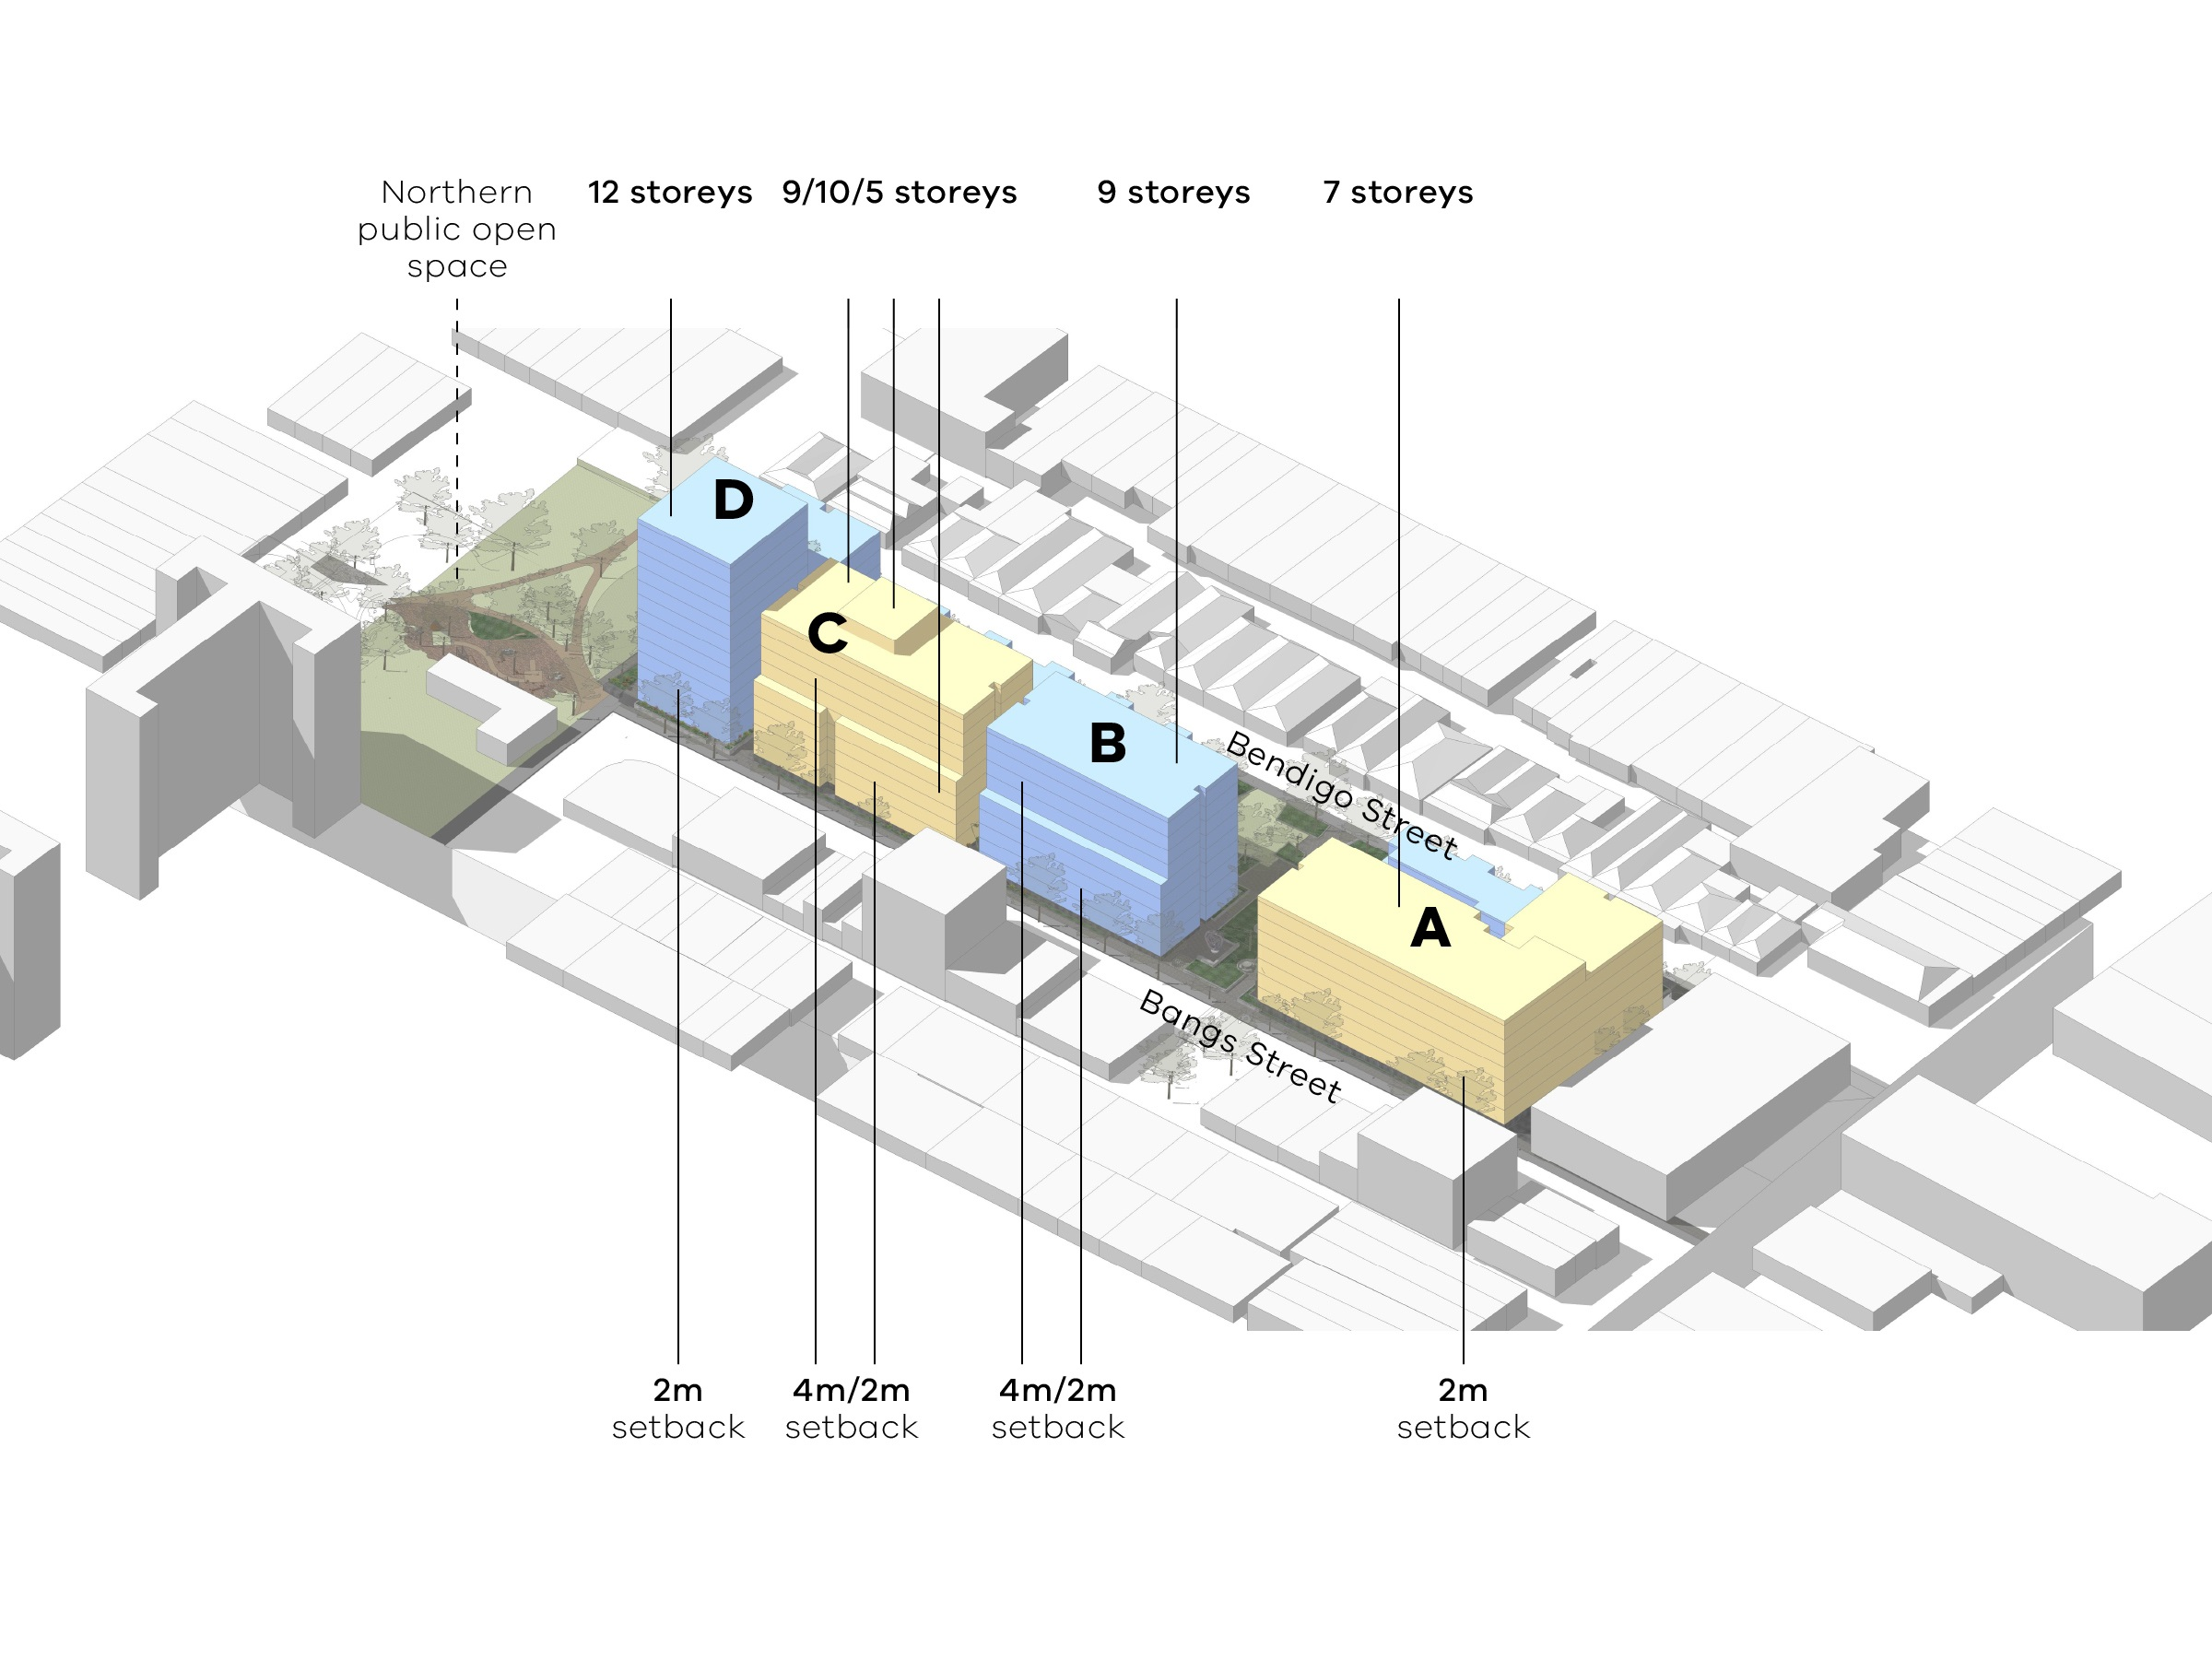 Diagram showing the heights and setbacks of the new development as seen from Bangs Street. Building D is located next to the northern public open space and has 12 storeys. The setback from Bangs Street is 2 metres back from Bangs Street. Building C has 9, 10 and 5 storeys. The setback from Bangs Street is 2/4 metres back from Bangs Street. Building B is 9 storeys. The setback from Bangs Street is 2/4 metres. Building A has 7 storeys. The setback from Bangs Street is 2 metres.